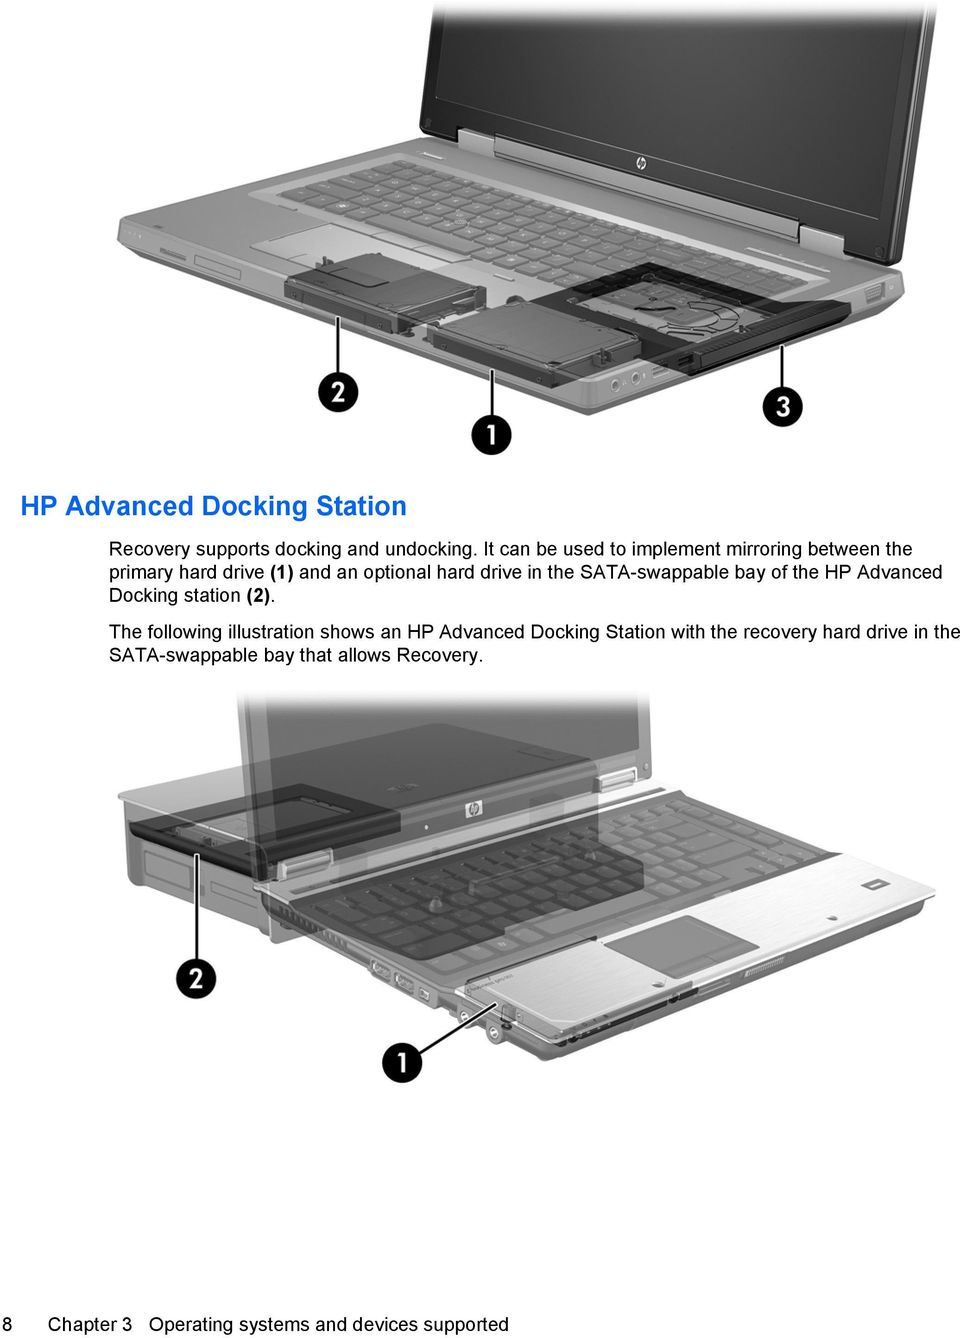 SATA-swappable bay of the HP Advanced Docking station (2).